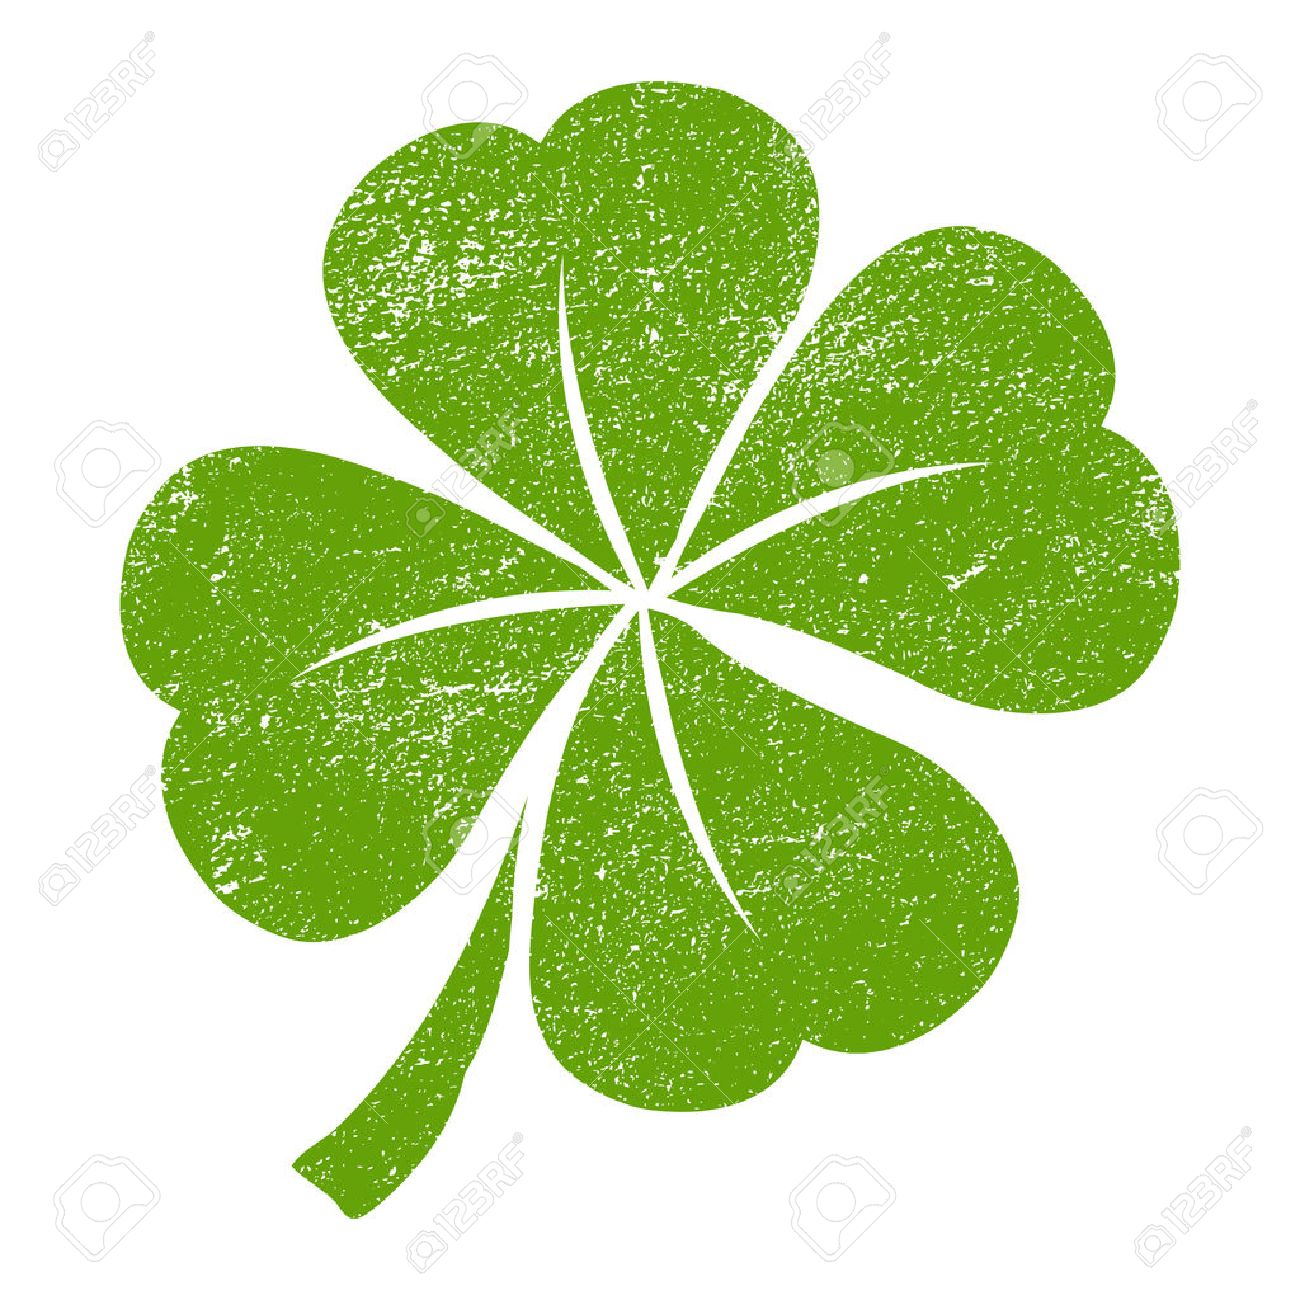 Shamrock stock photos royalty free business images lucky irish clover leaf biocorpaavc Gallery